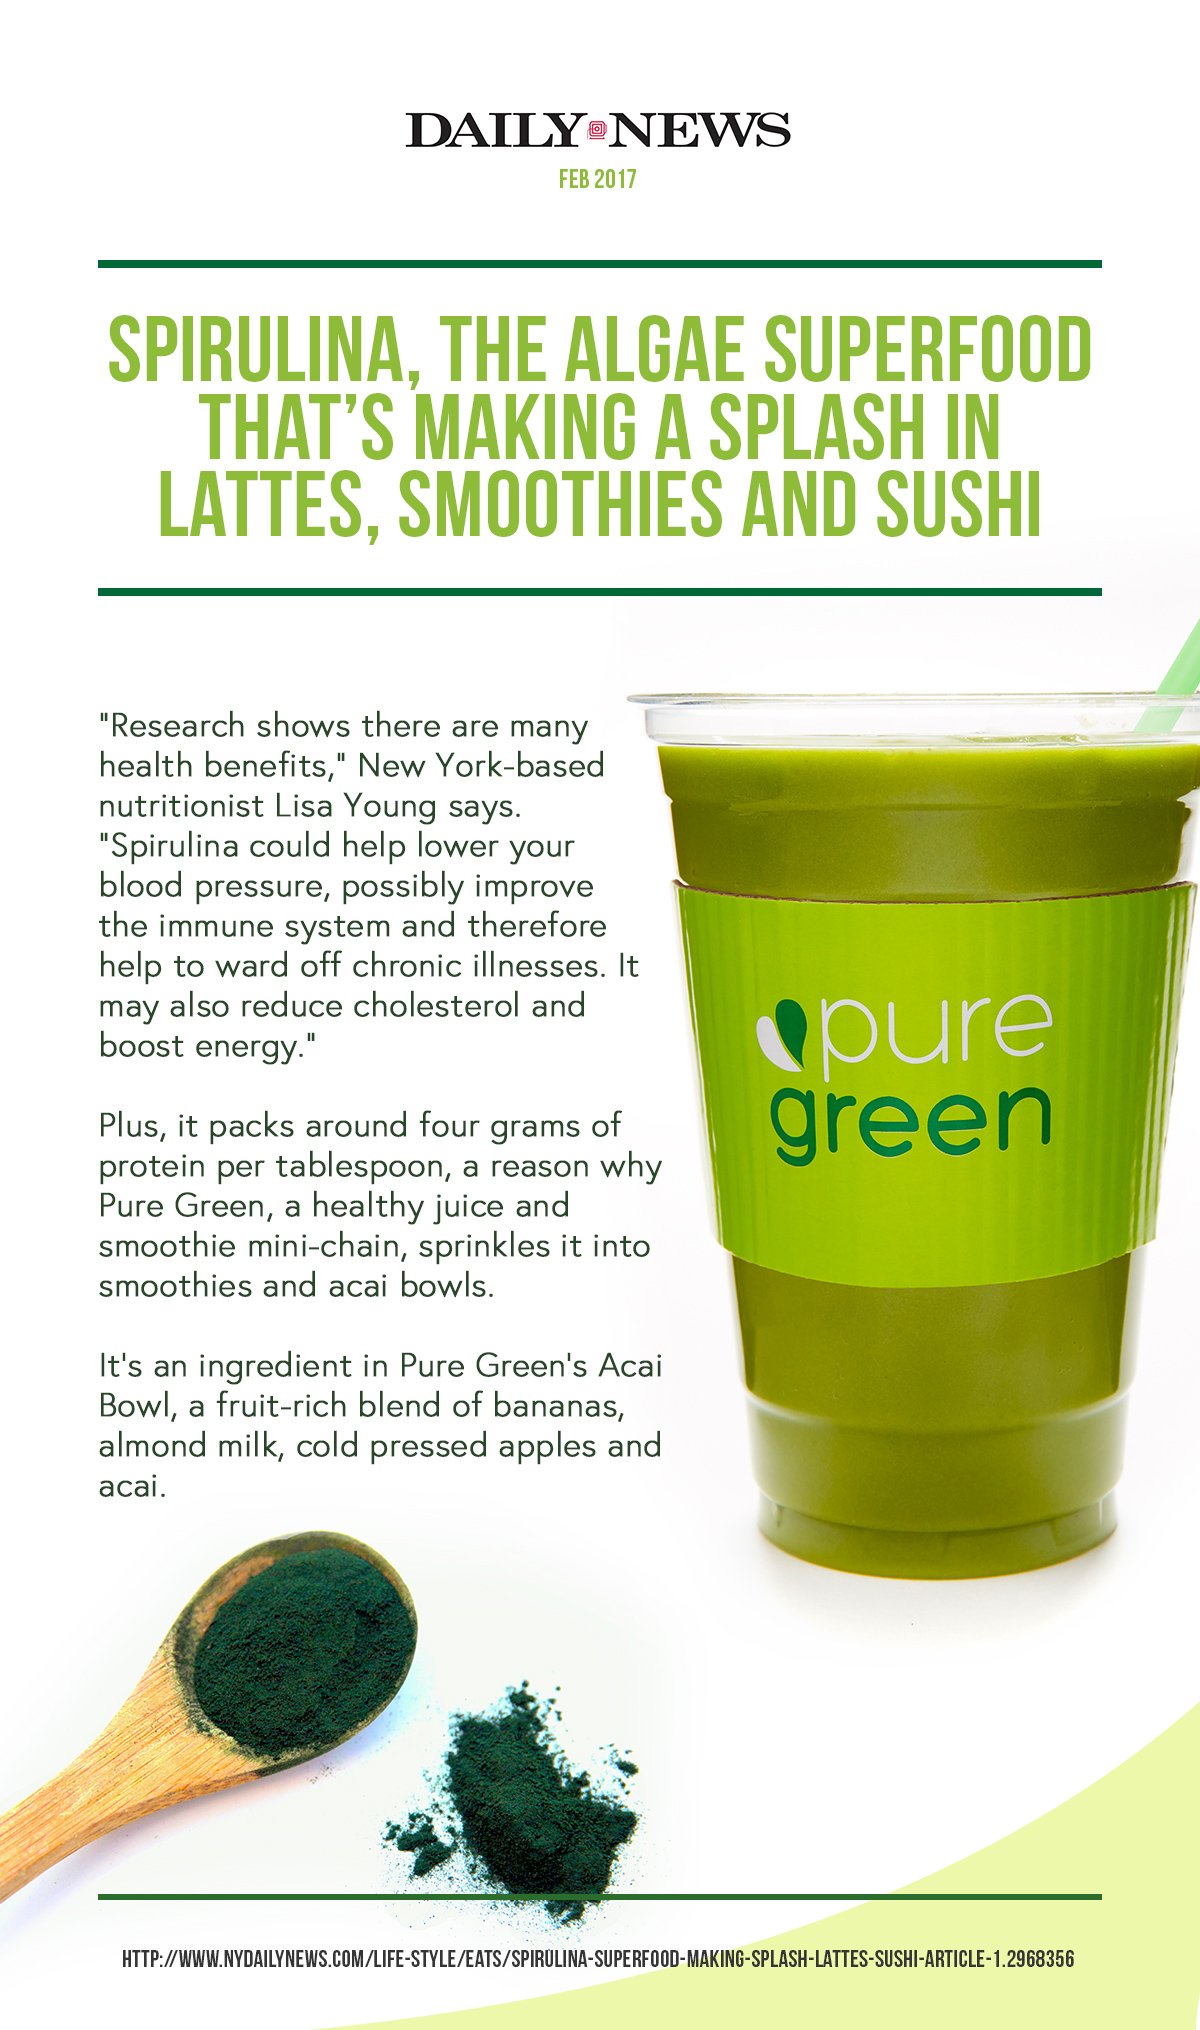 Pure Green uses superfoods like spirulina in cold pressed juice.jpg